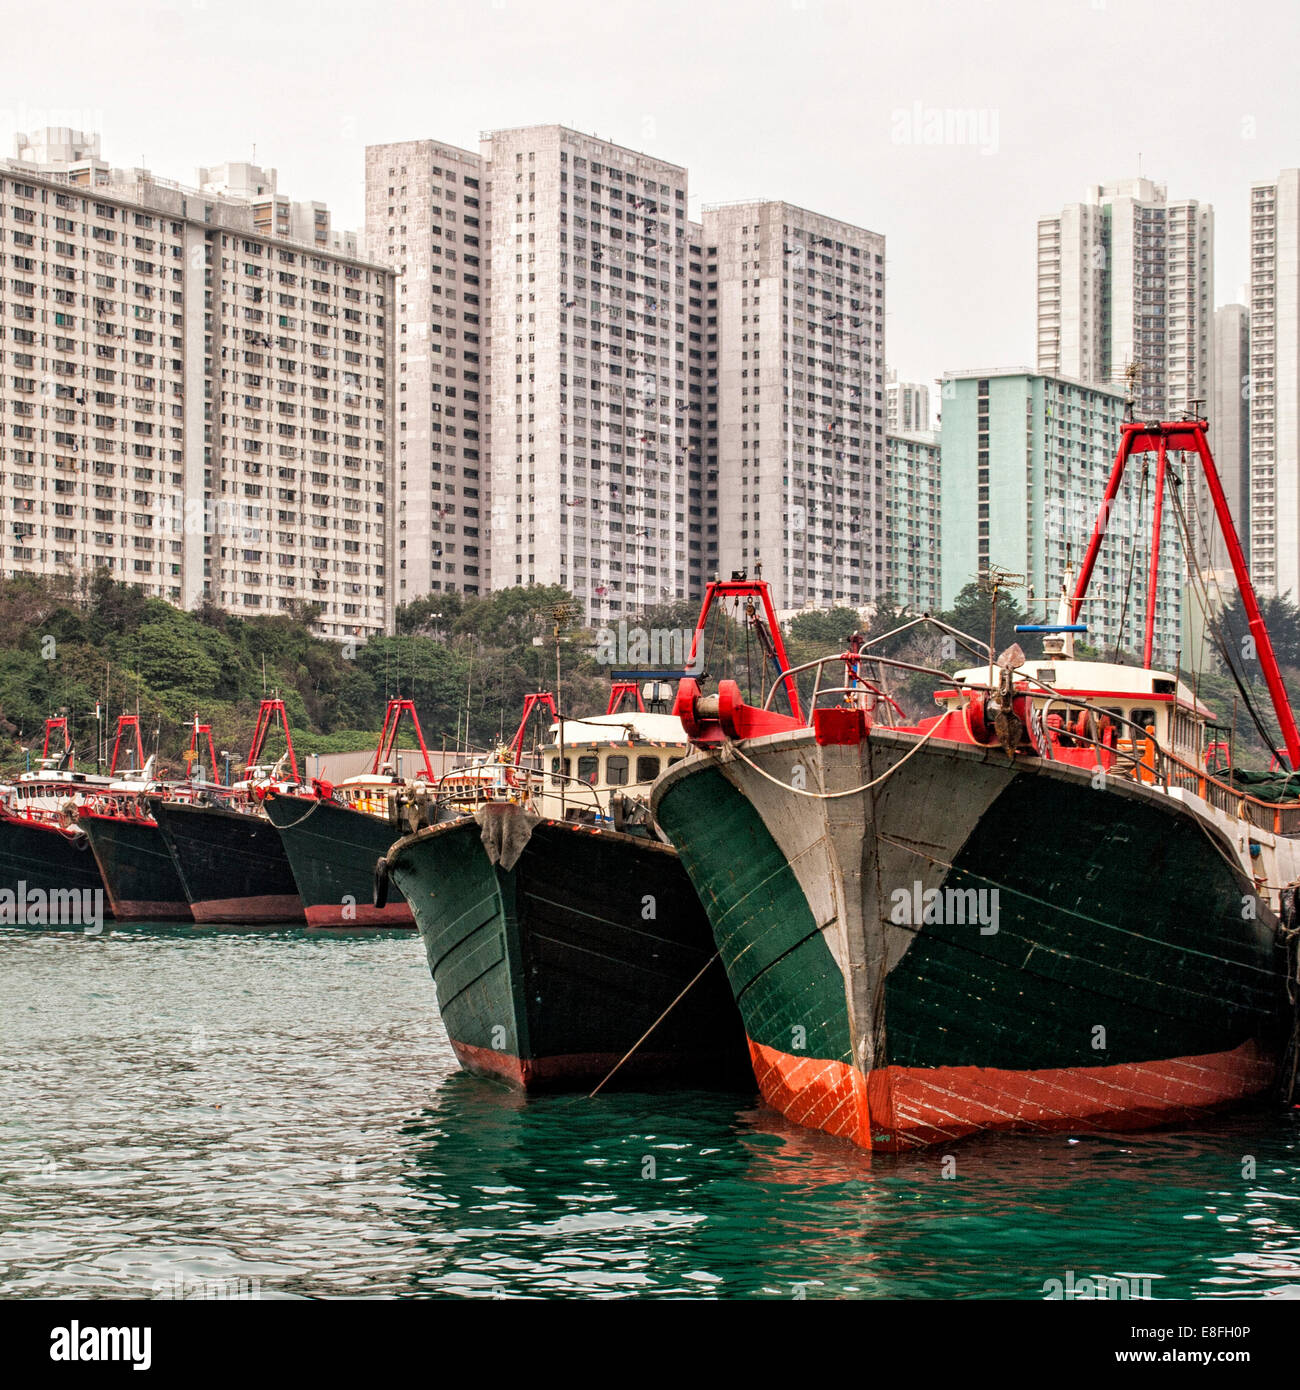 View of anchored boats - Stock Image